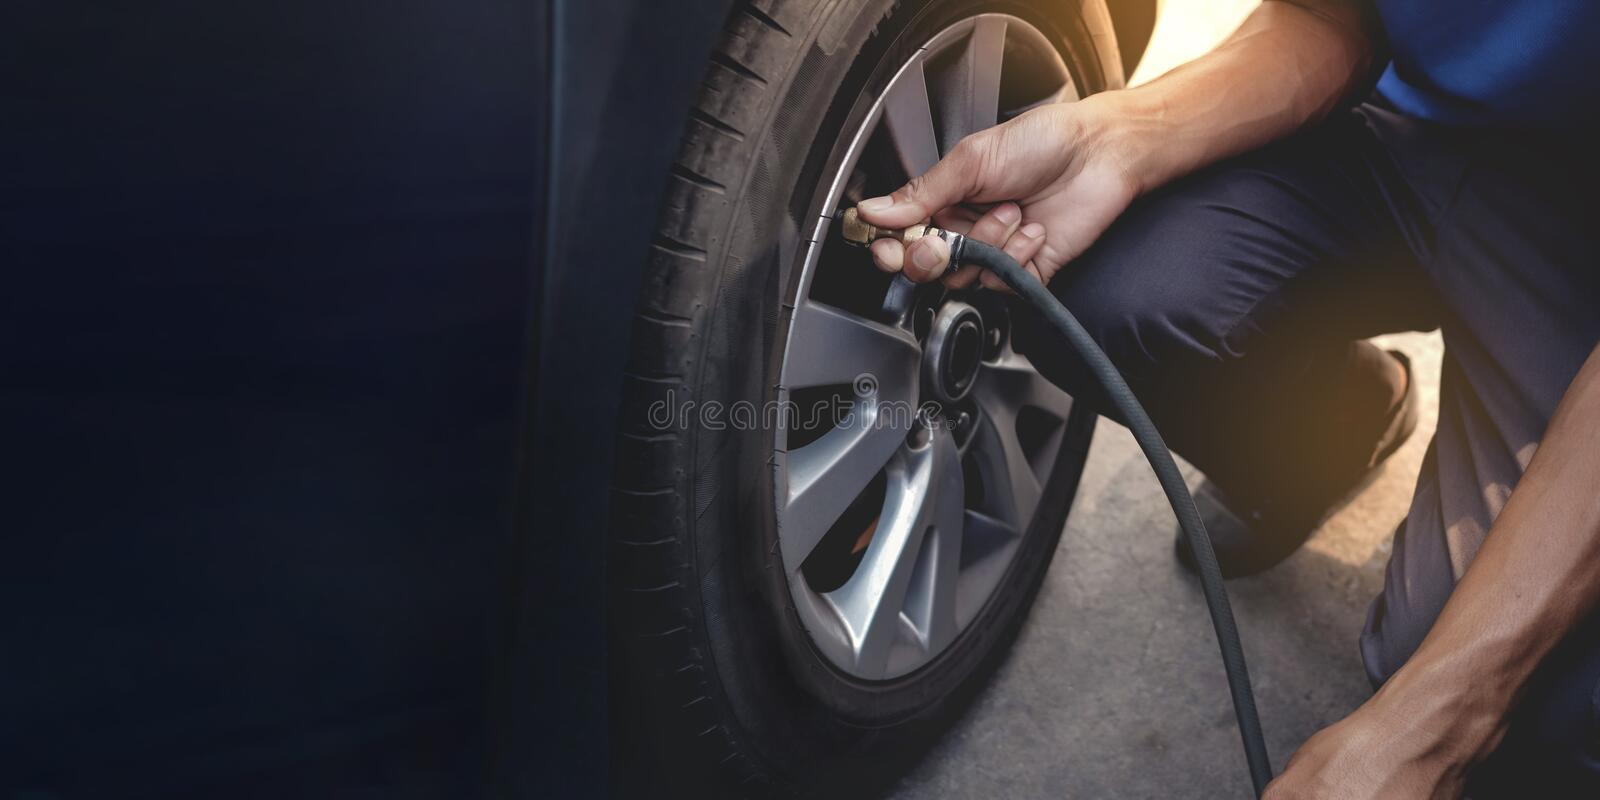 Man filling Air into the Tire. Car Driver Checking Air Pressure and Maintenance his Car by himself stock photography